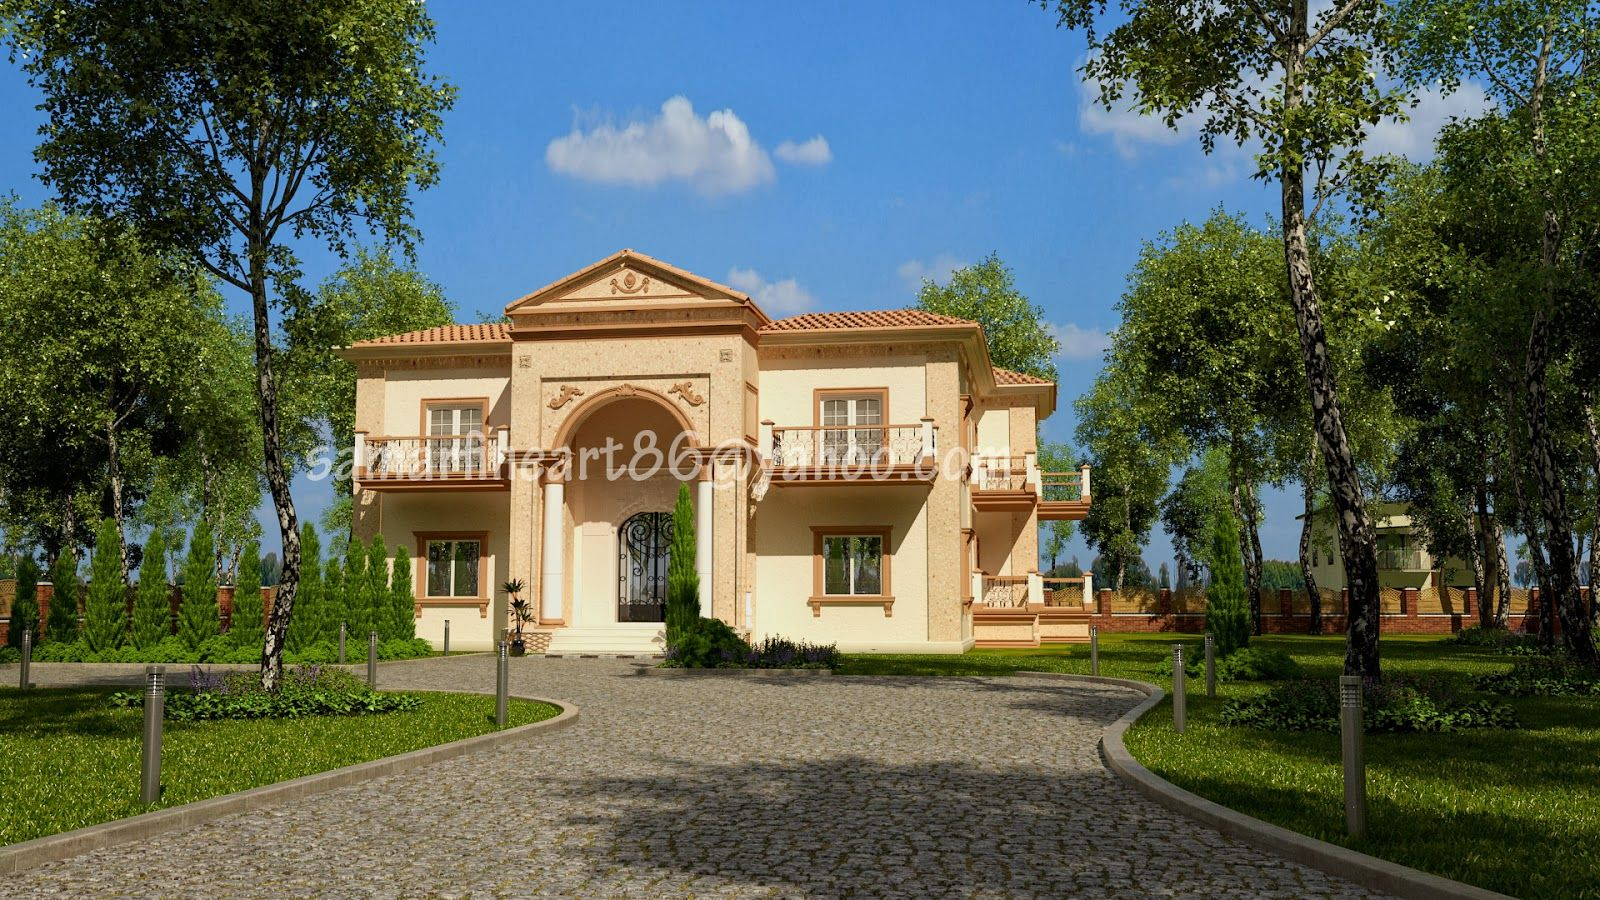 Summer Fouad Egyptian Architect: my design of a claasic villa #decor #residential #...